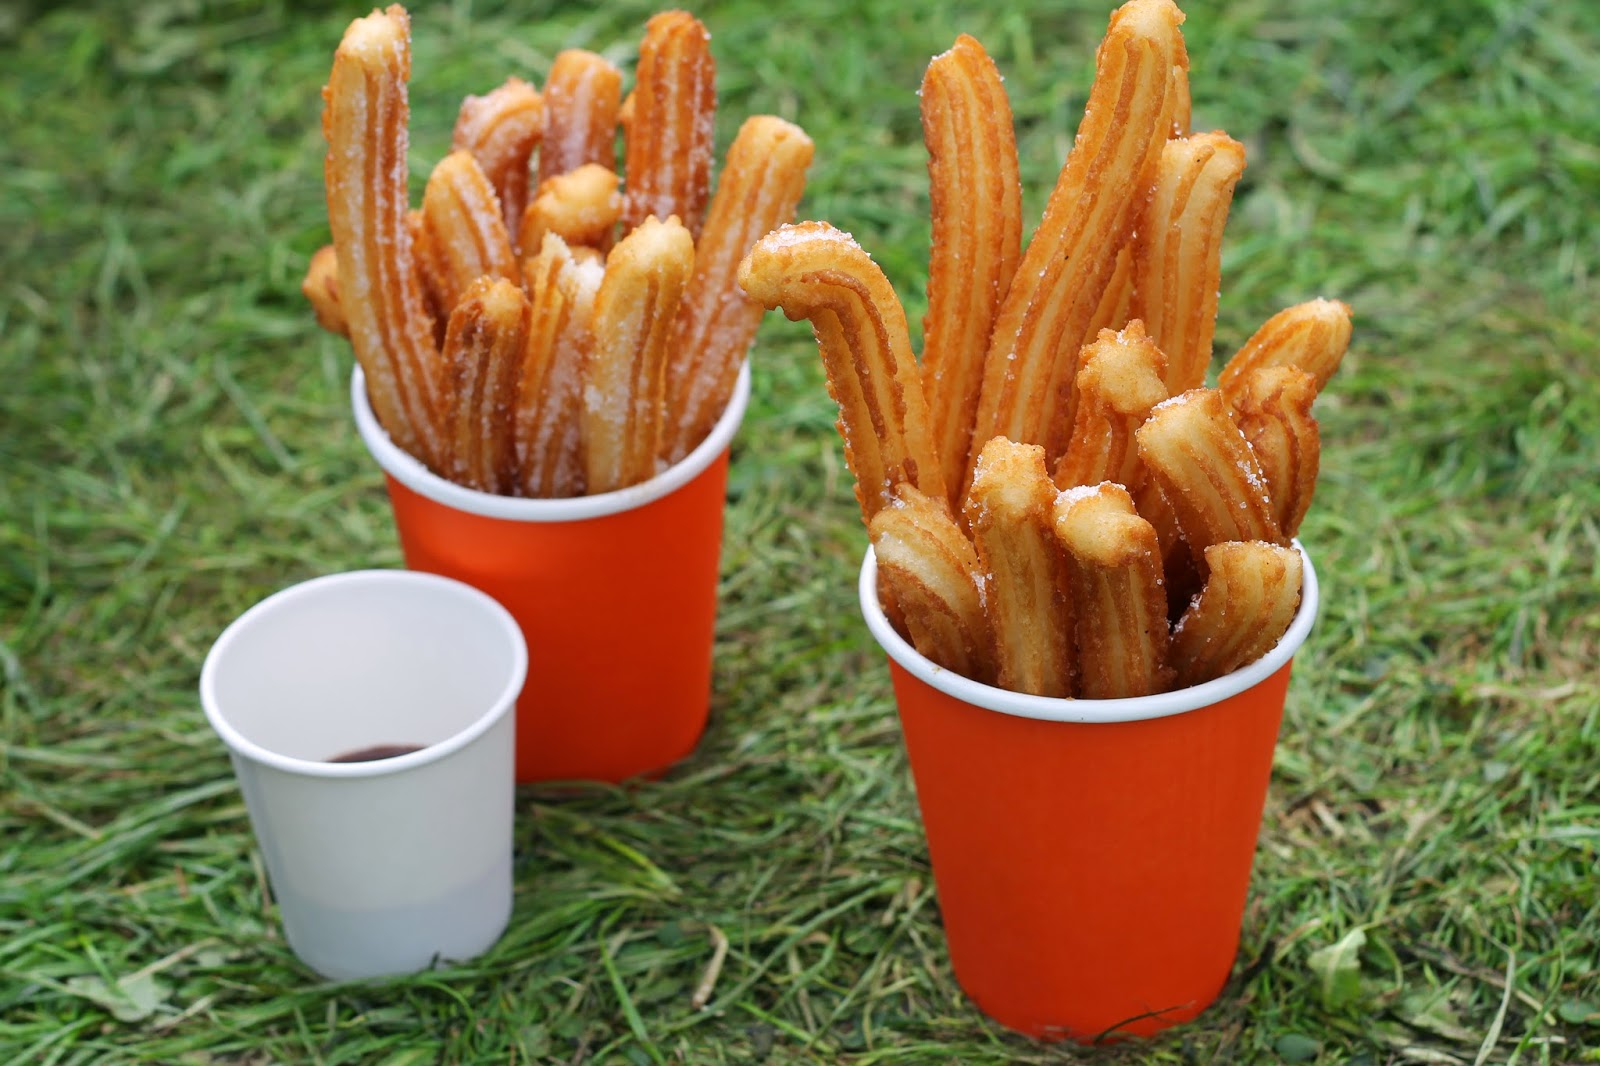 Liverpool Food and Drink Festival Churros